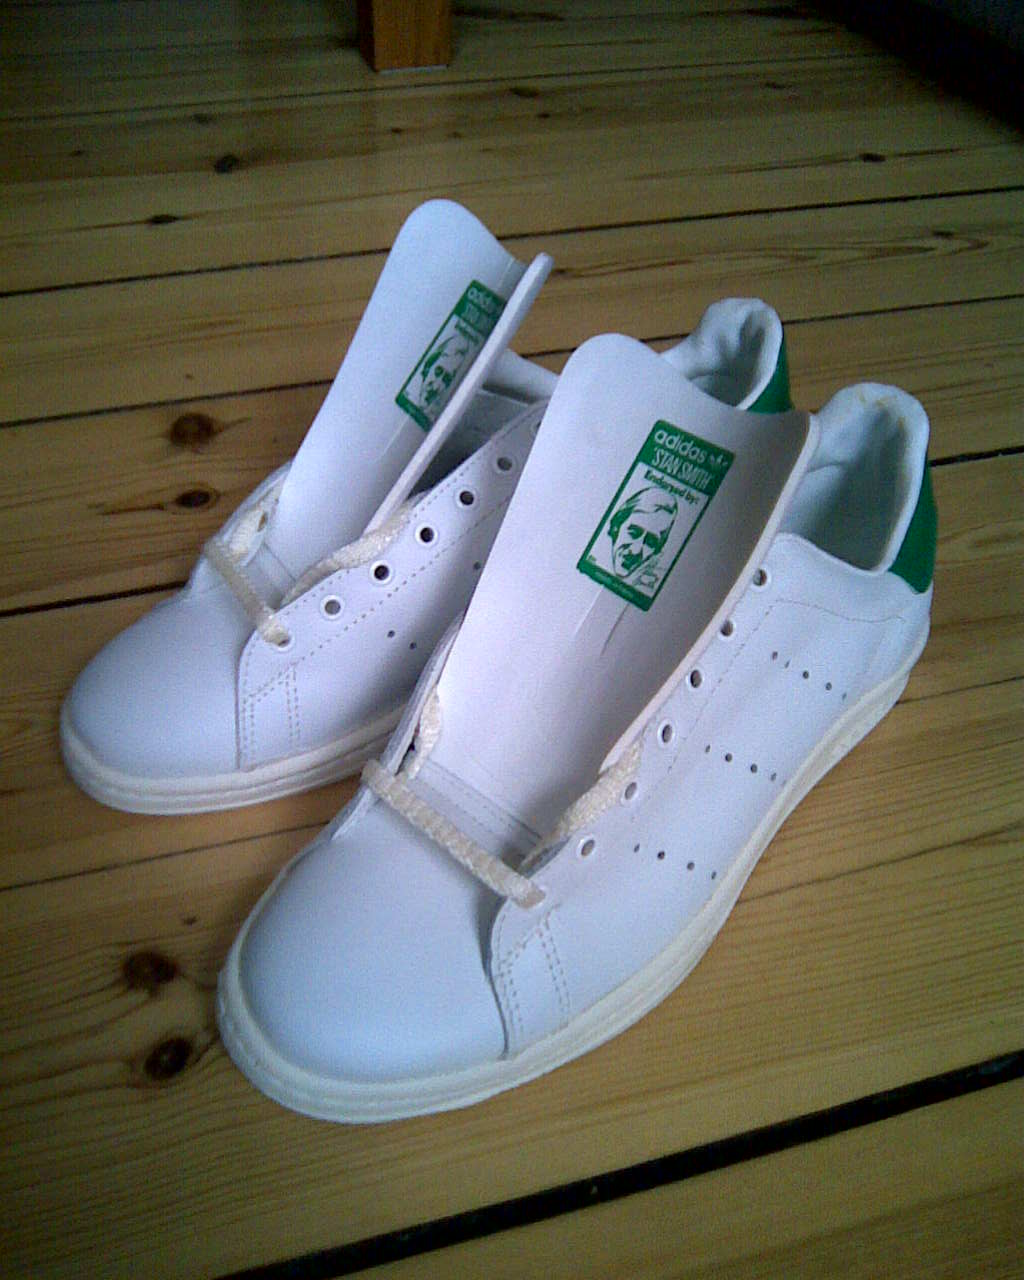 a81e4eb197 Adidas Stan Smith - Wikipedia